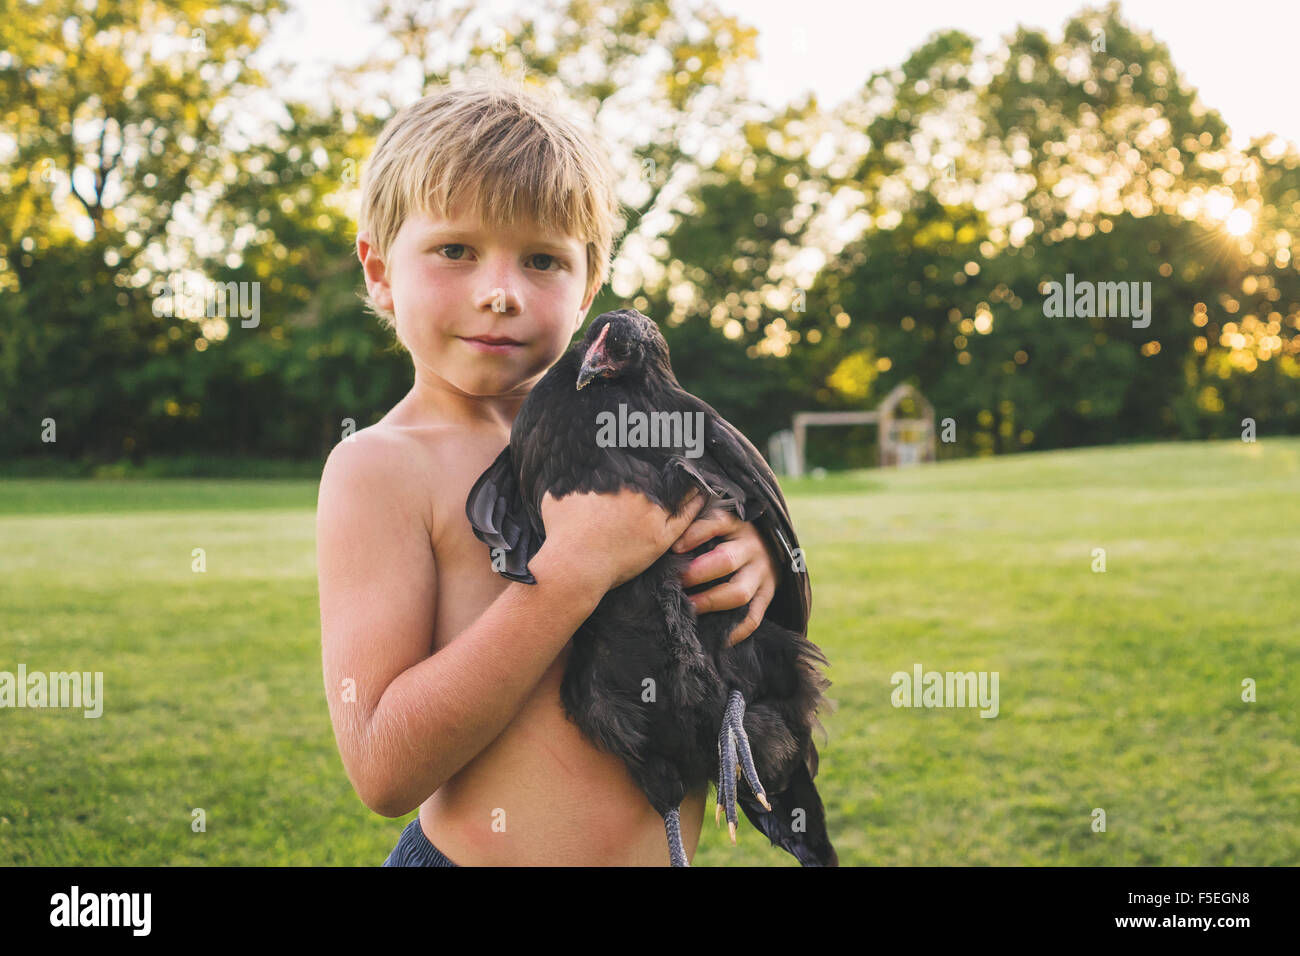 Portrait of a Boy holding q chicken - Stock Image